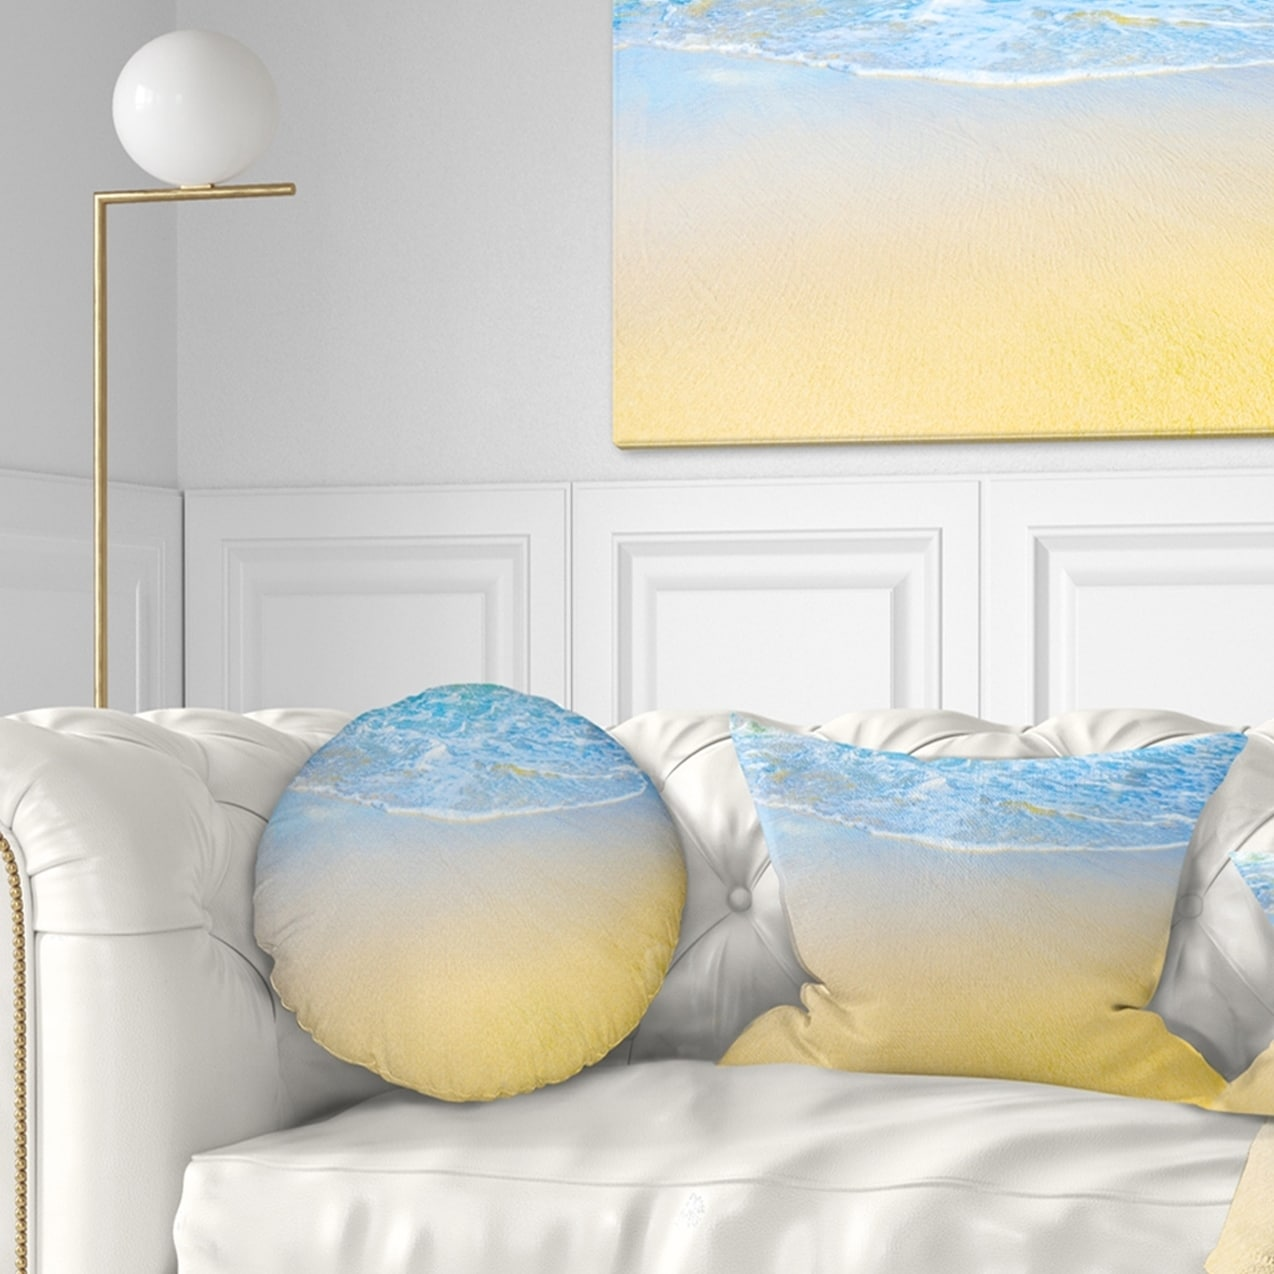 x 26 in in Sofa Throw Pillow 26 in Designart CU10750-26-26 Smooth Sea Surf Over Blue Waters Seashore Cushion Cover for Living Room